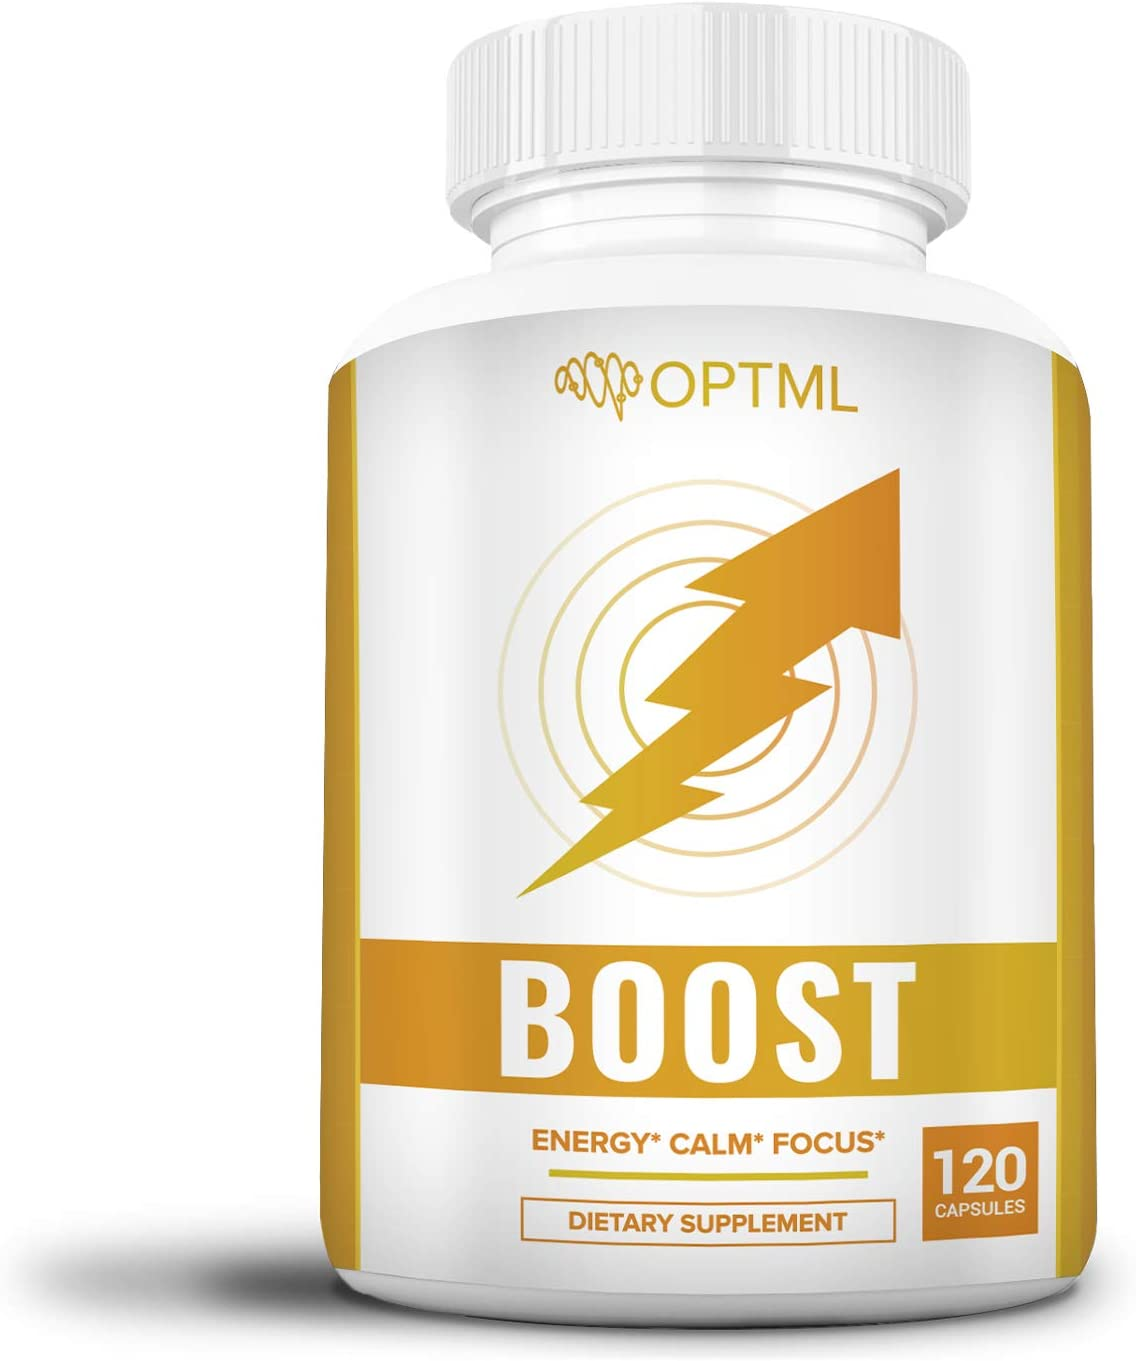 OPTML Boost 120 (Capsules), Caffeine + L-Theanine Nootropic Supplement, Energy, Calm, Focus, Enhances Memory, Mood Boost, Clinically Effective Doses, No Crash Or Jitters